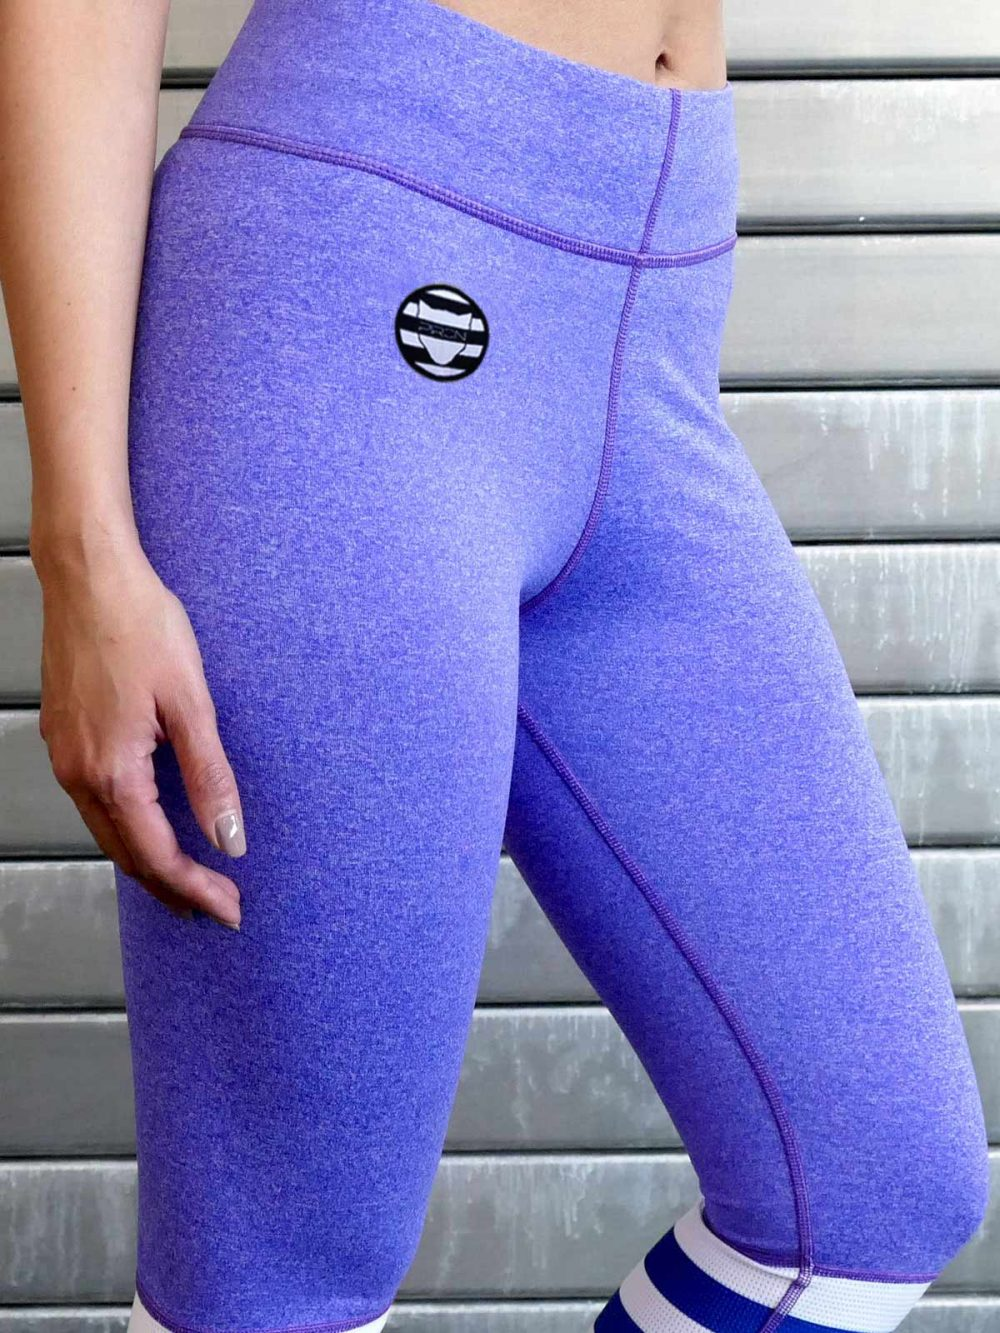 Sportbekleidung Yoga Outfit Fitness Outfit Sportswear Leggings Tights